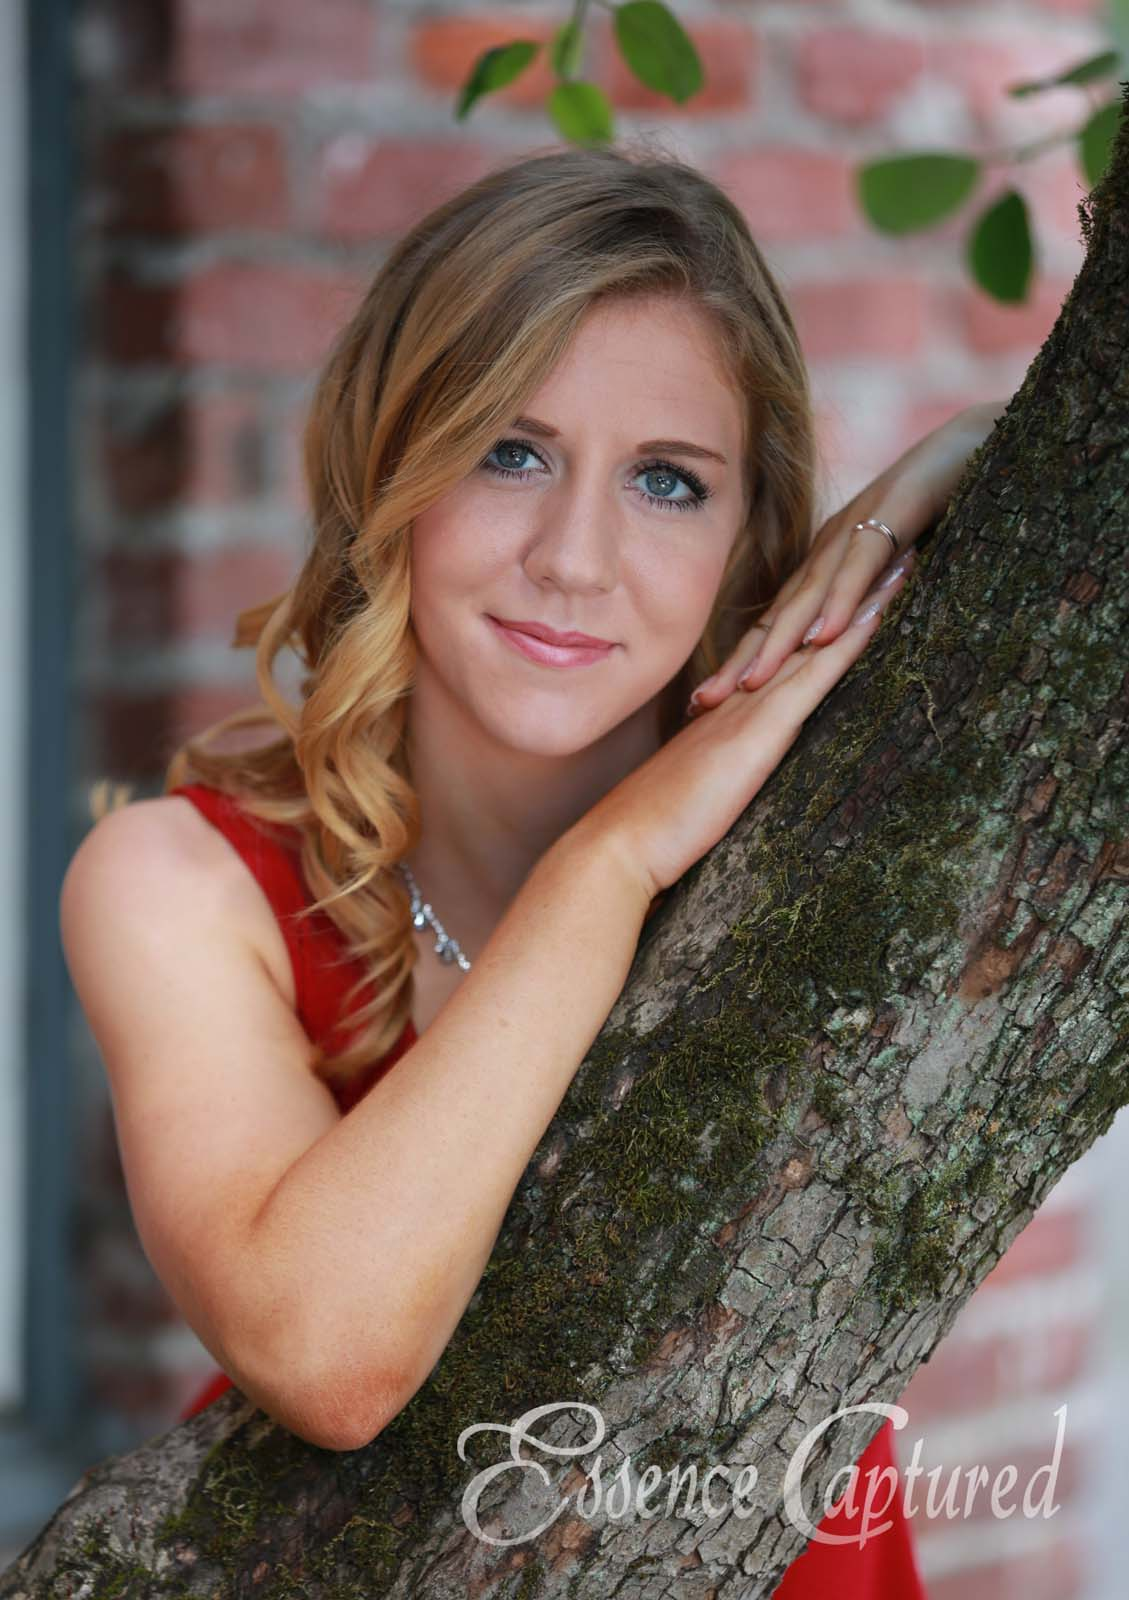 female high school senior portrait red dress long blonde hair leaning on tree brick backdrop